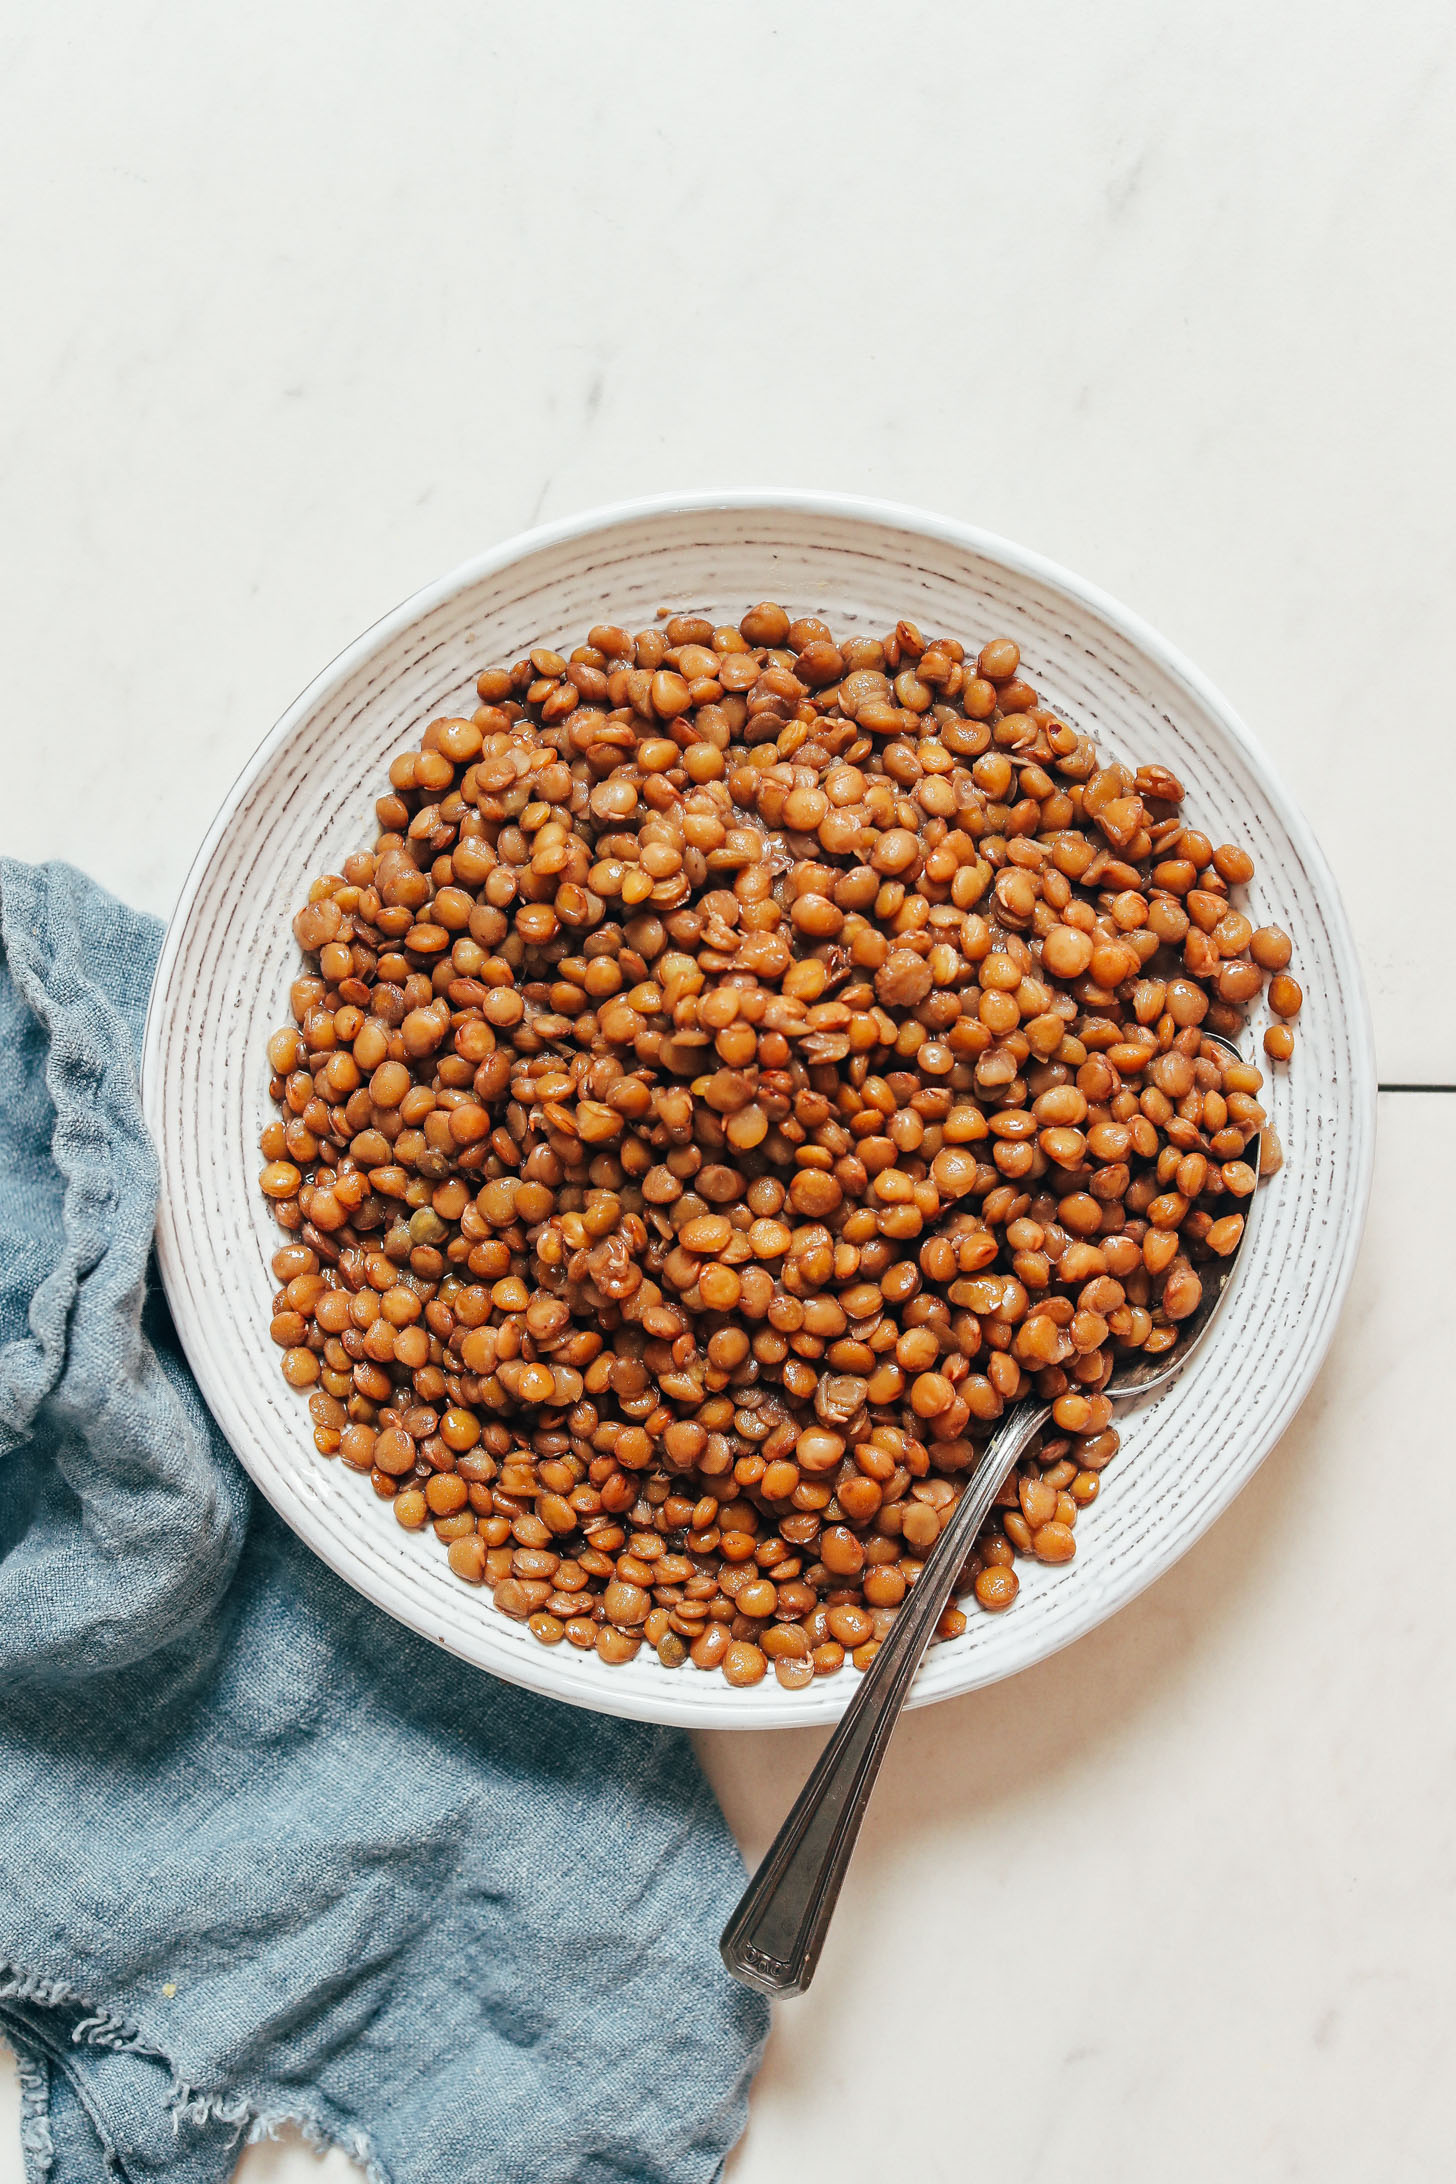 Vintage spoon in a bowl of perfectly cooked Instant Pot lentils